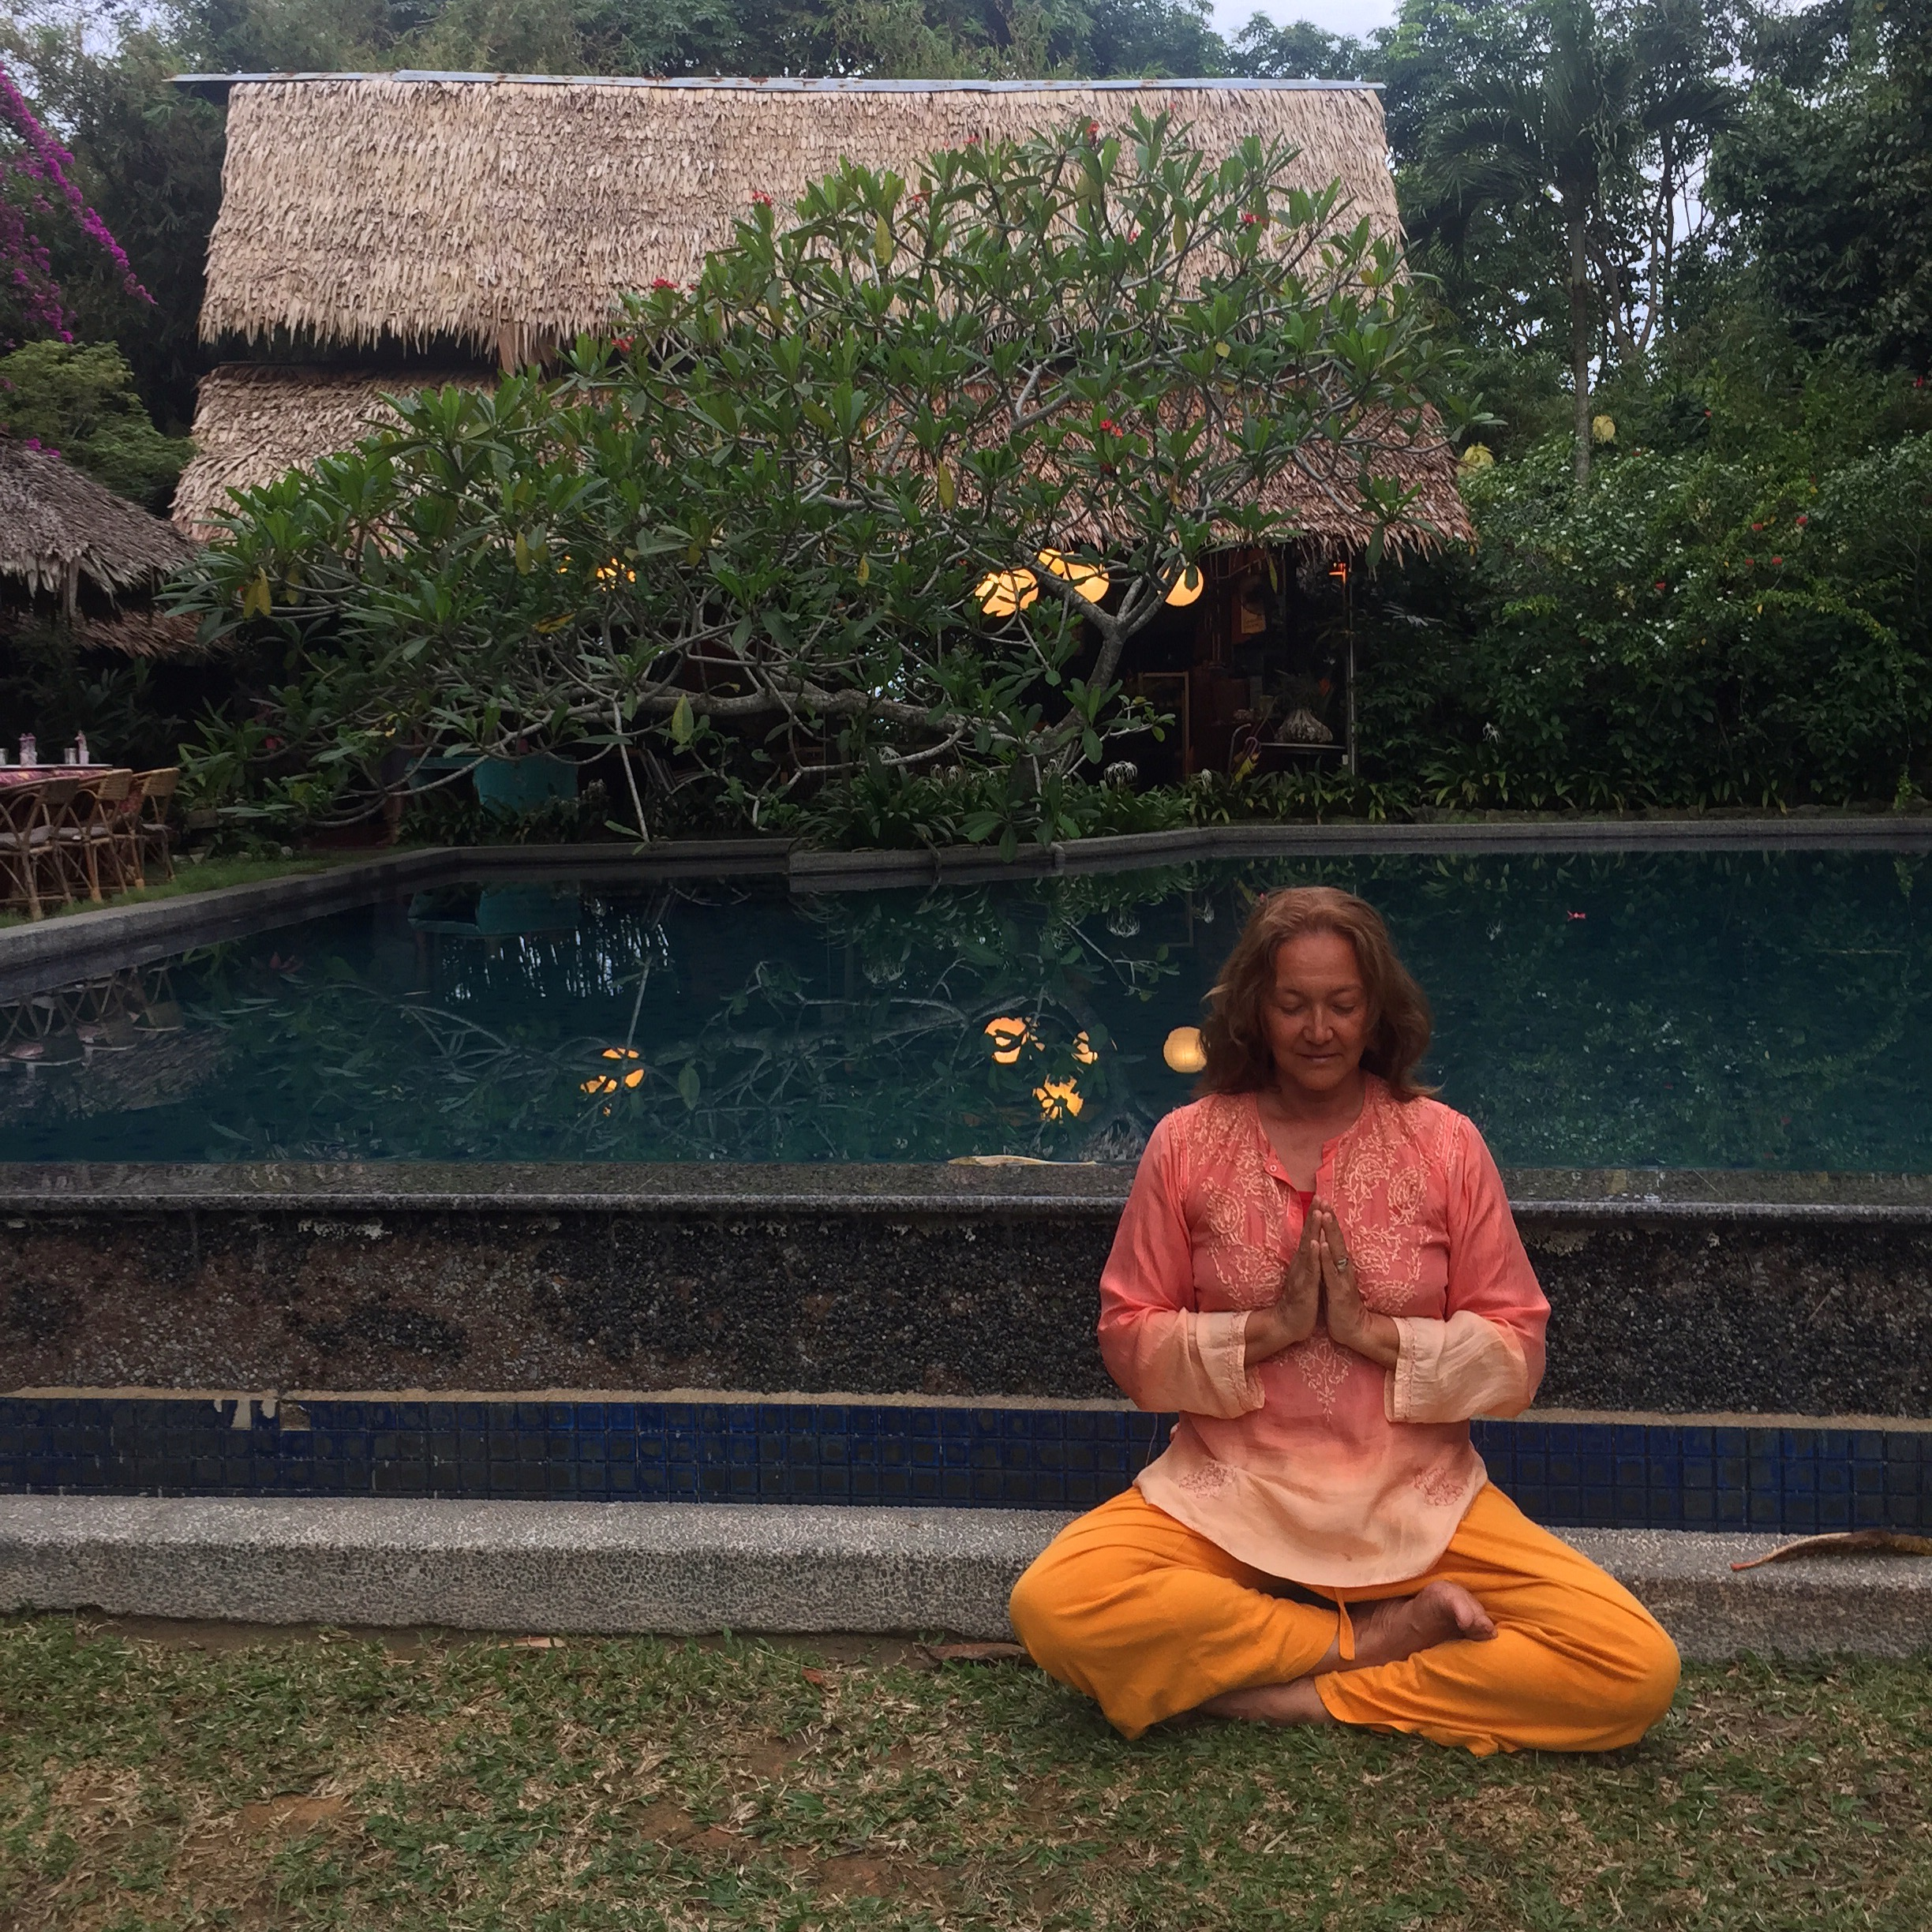 Yoga breathing practice at the end of the main pool at Tiger Rock. Open your eyes to a wonderful green jungle view.